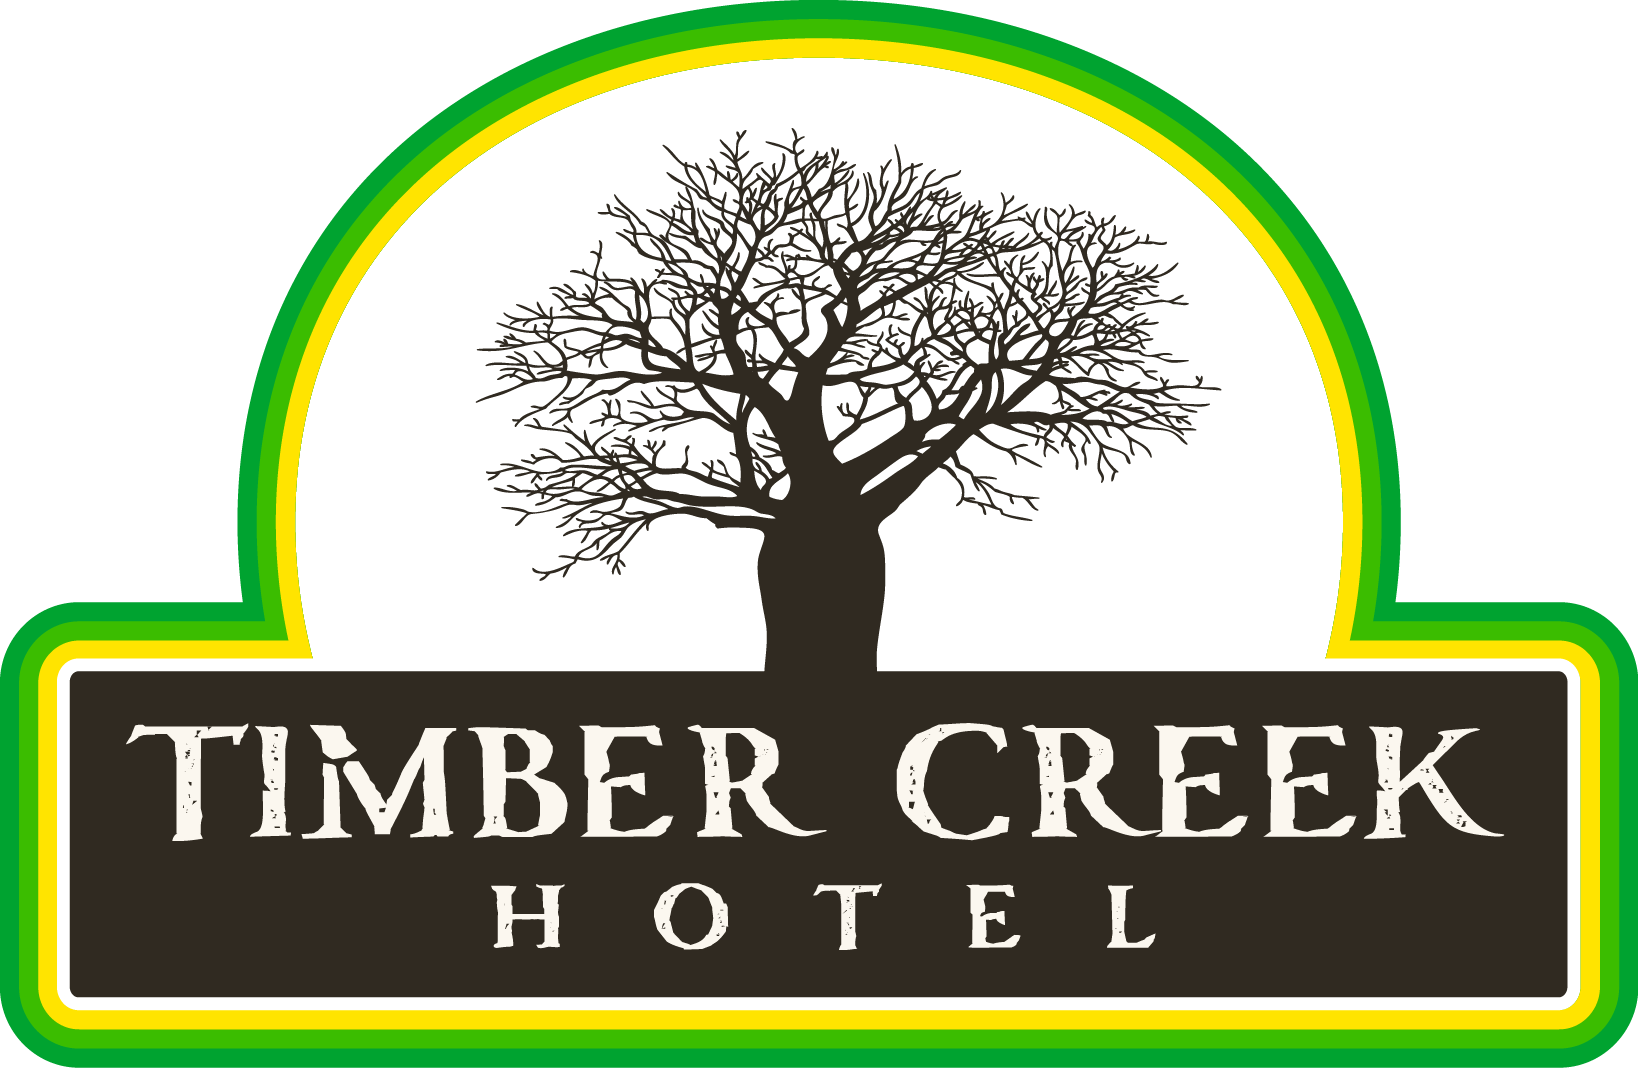 Timber Creek Hotel